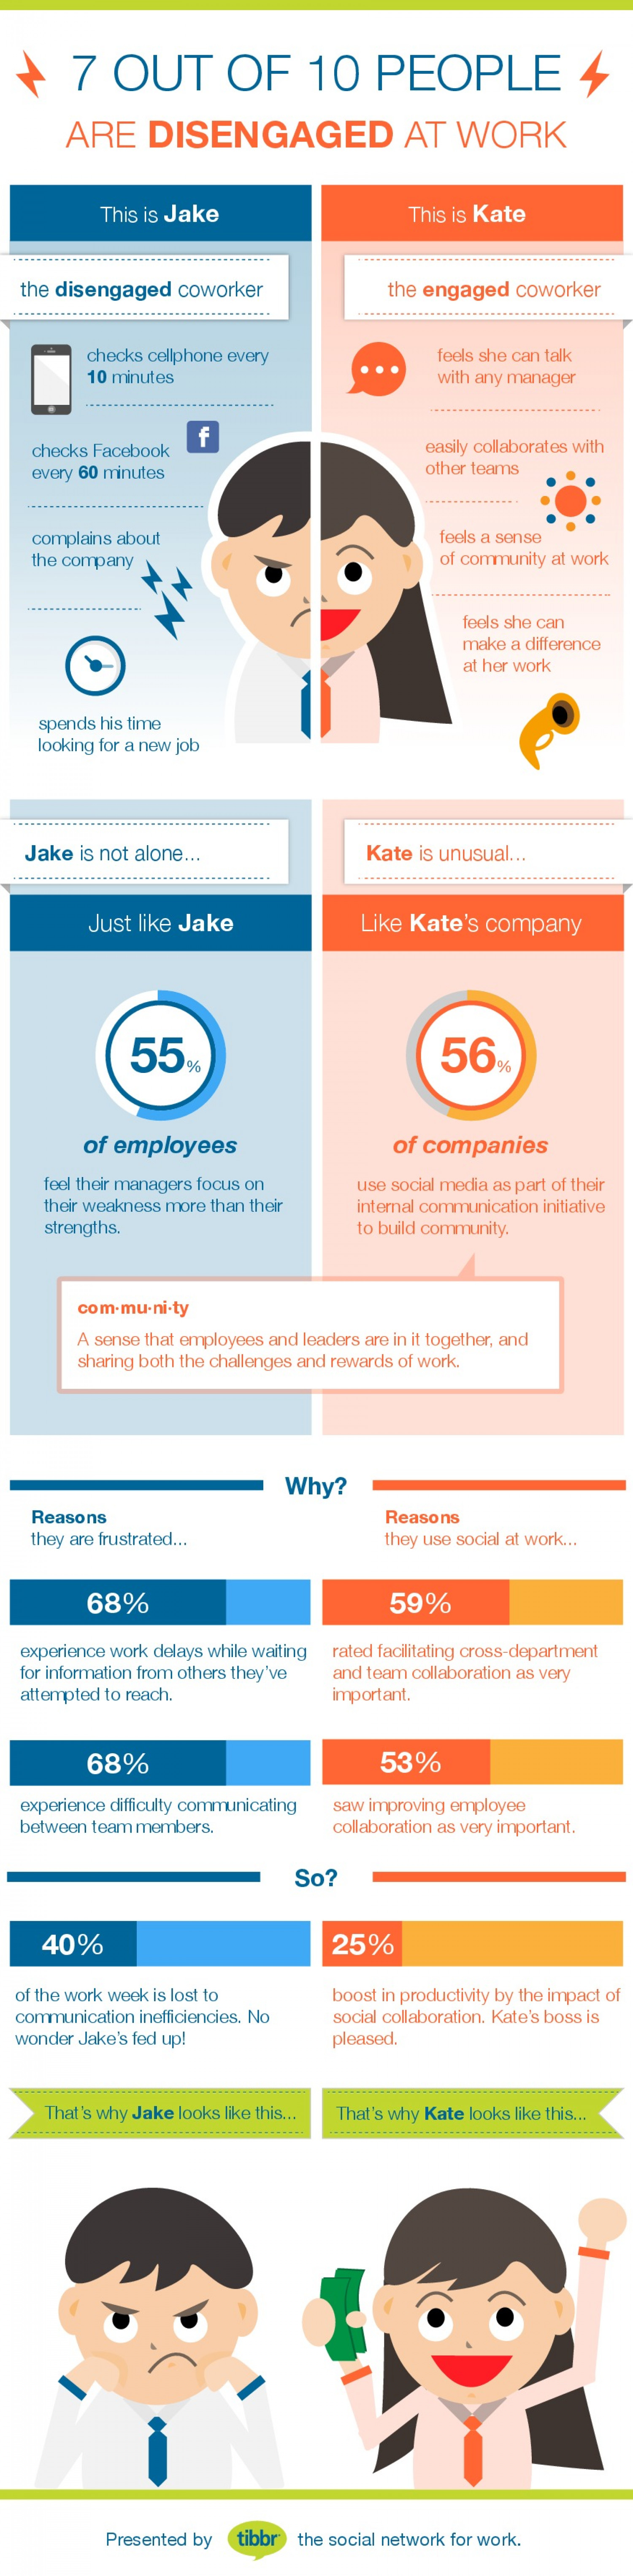 Engaged vs Disengaged Employees Infographic